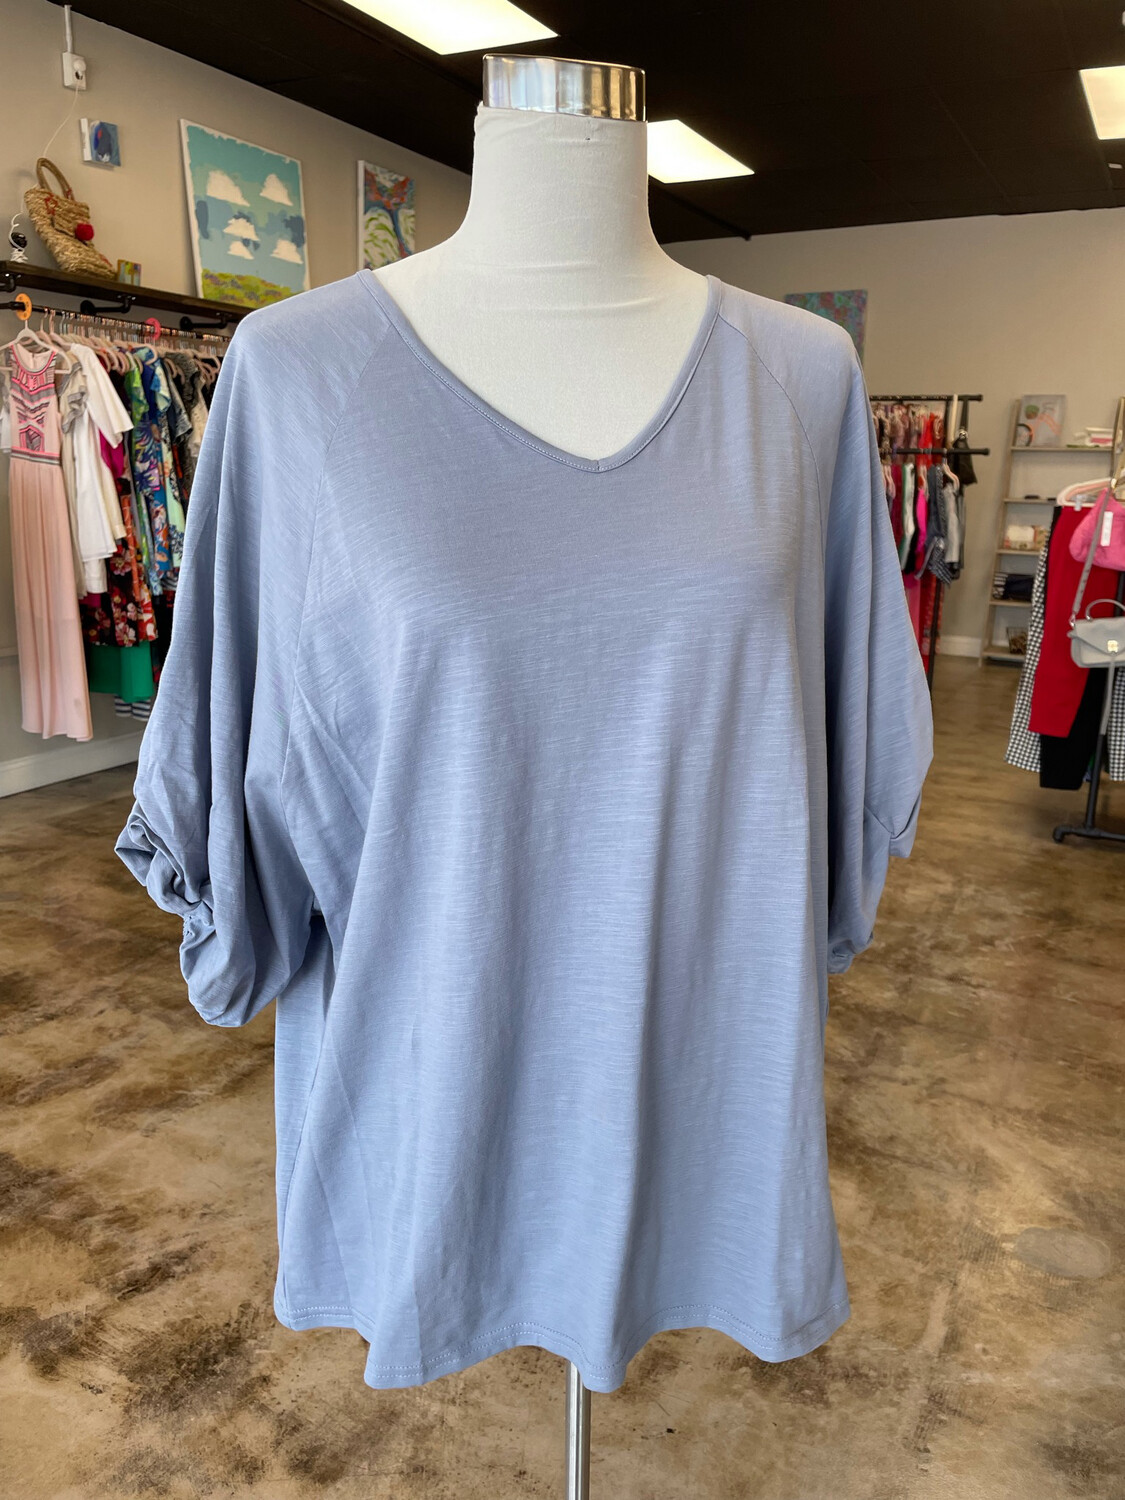 Livin' For The Weekend Grey Pleated Sleeve V-neck Top - L